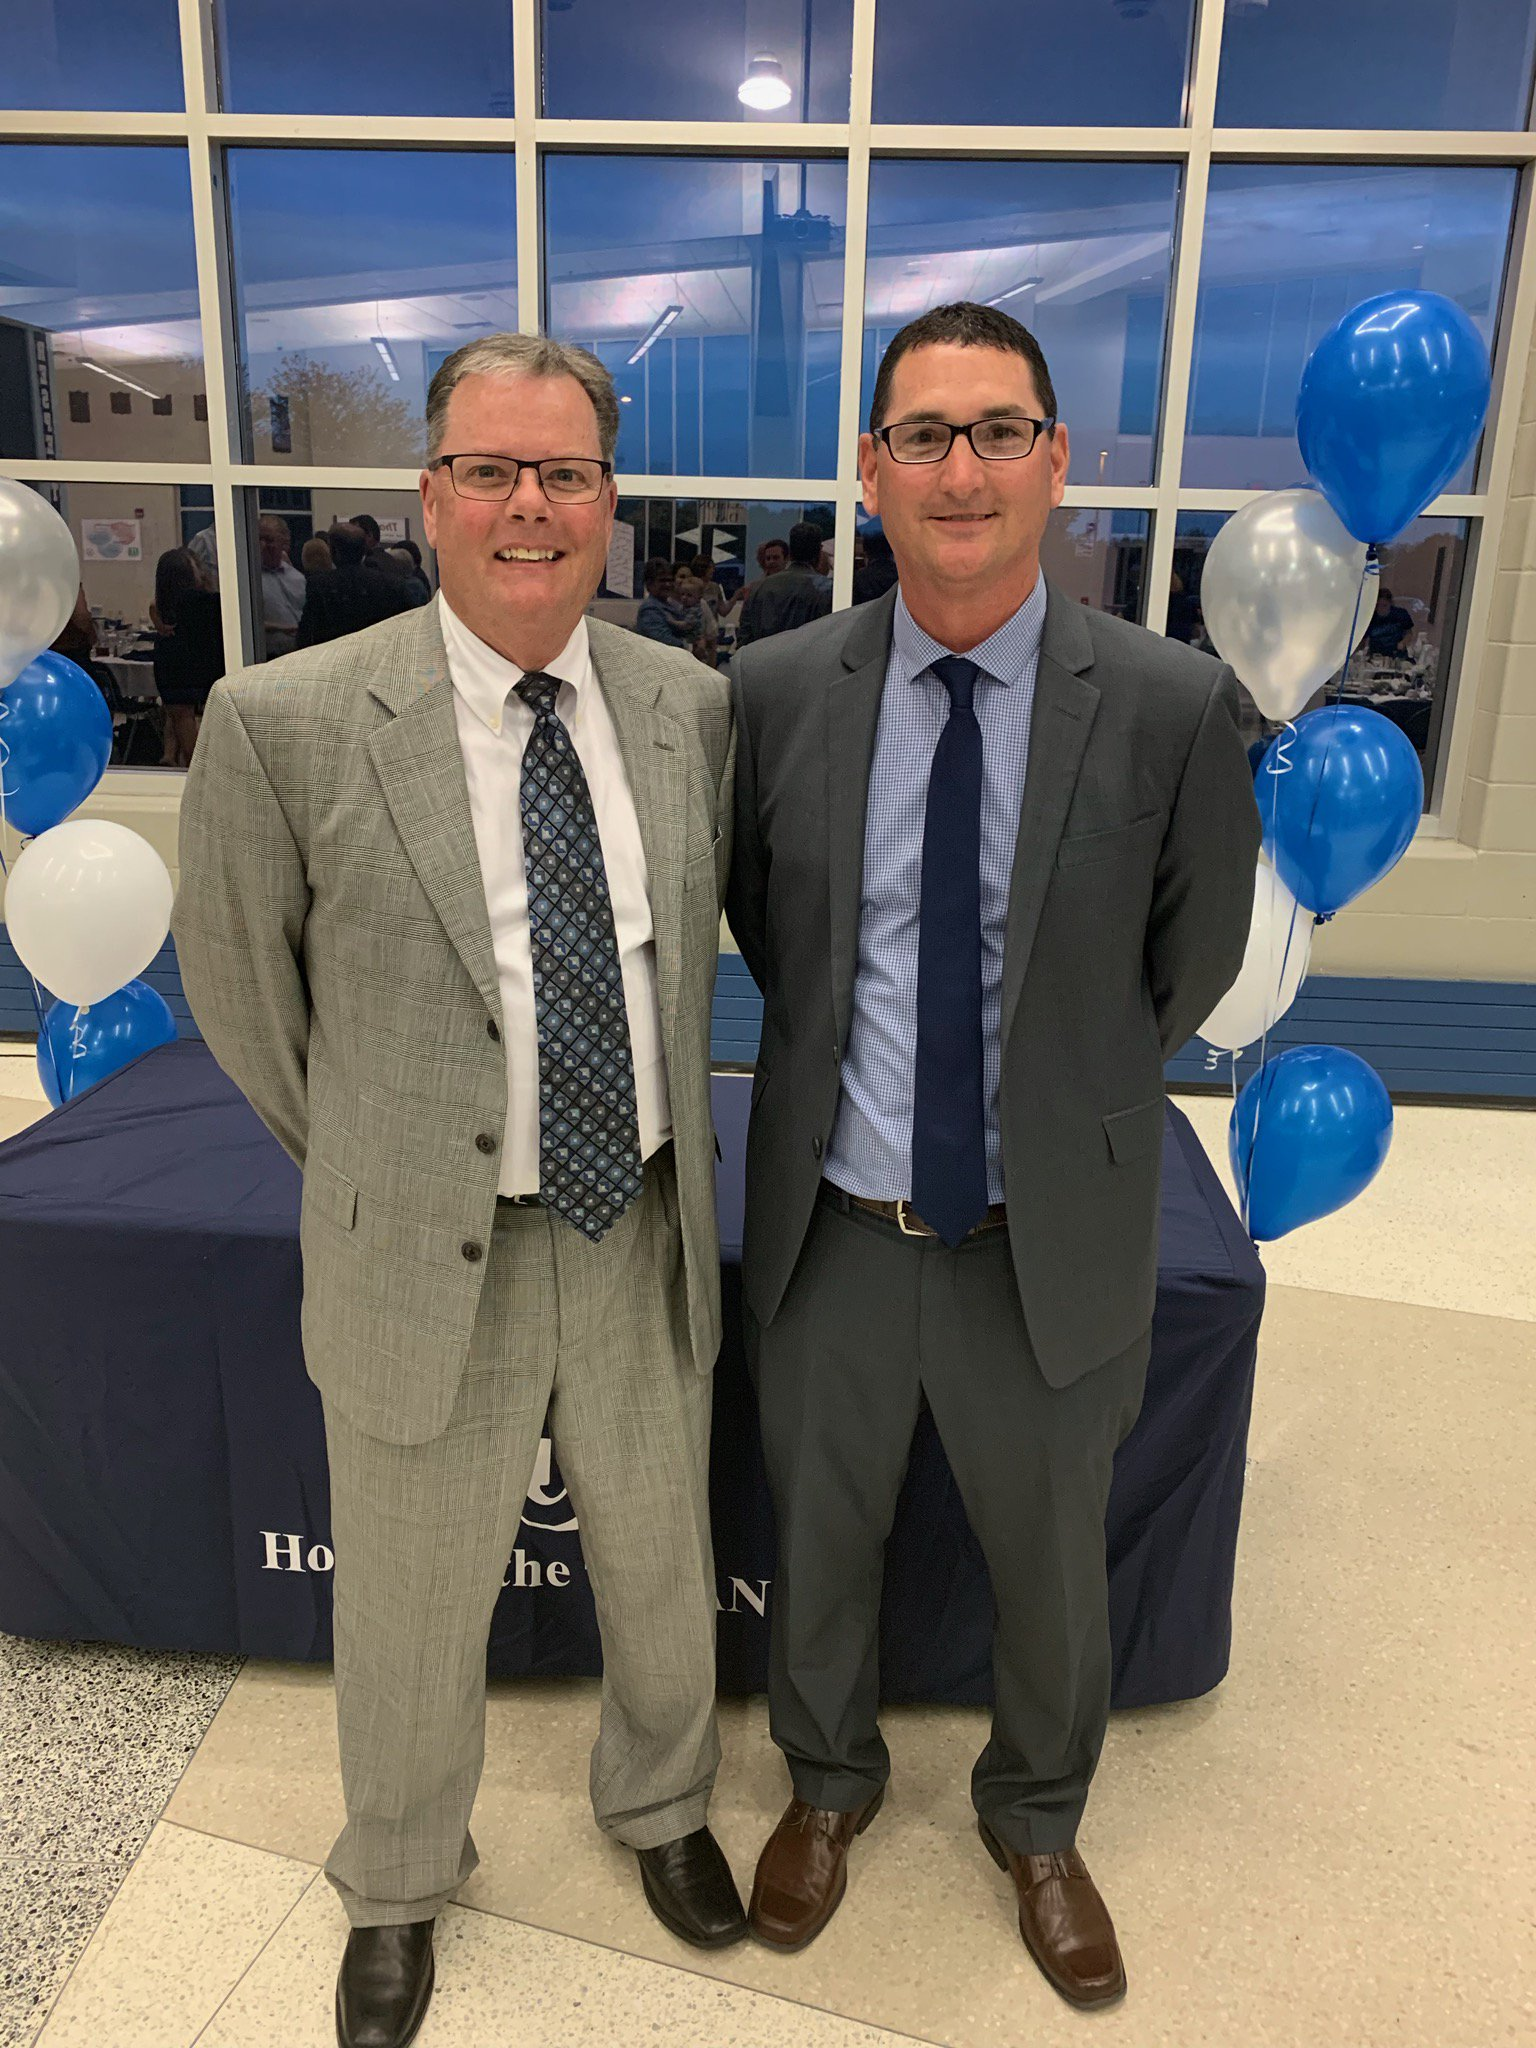 Happy Retirement to @tmeans1 - enjoyed speaking on his behalf last week. #LCMSPTB https://t.co/iCl4HX6FGr